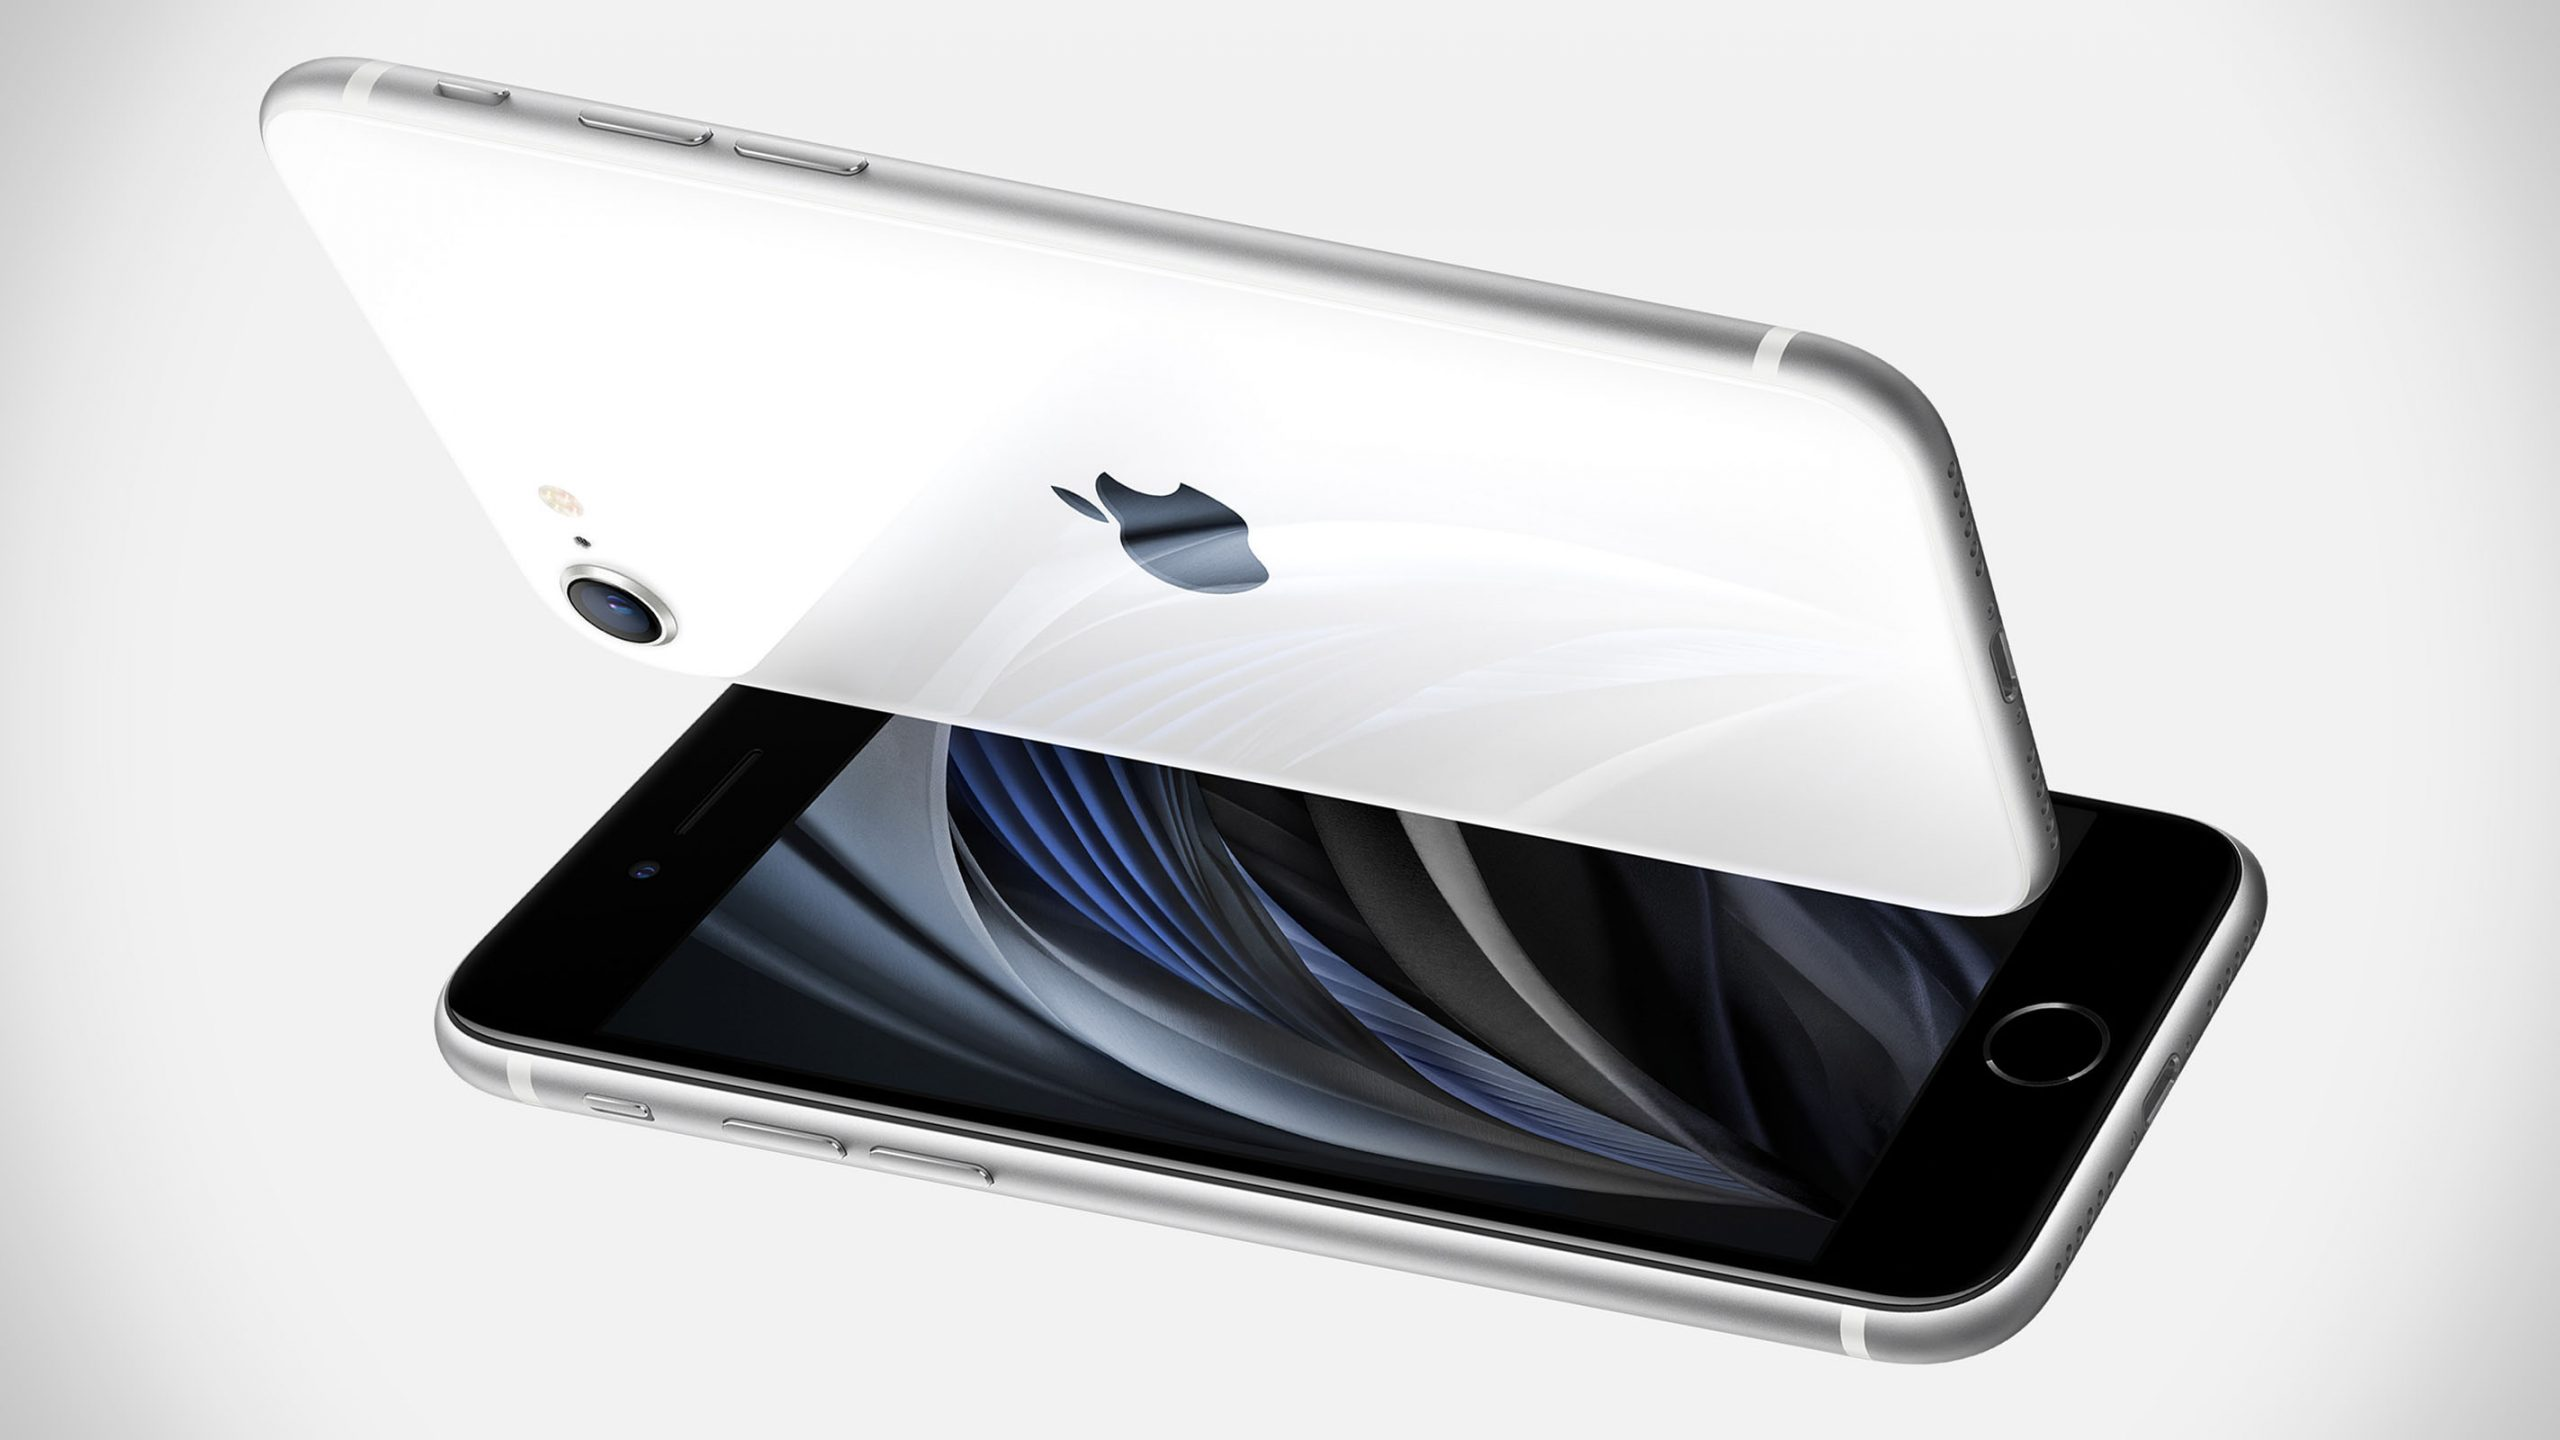 iphone se 2020 price in south Africa